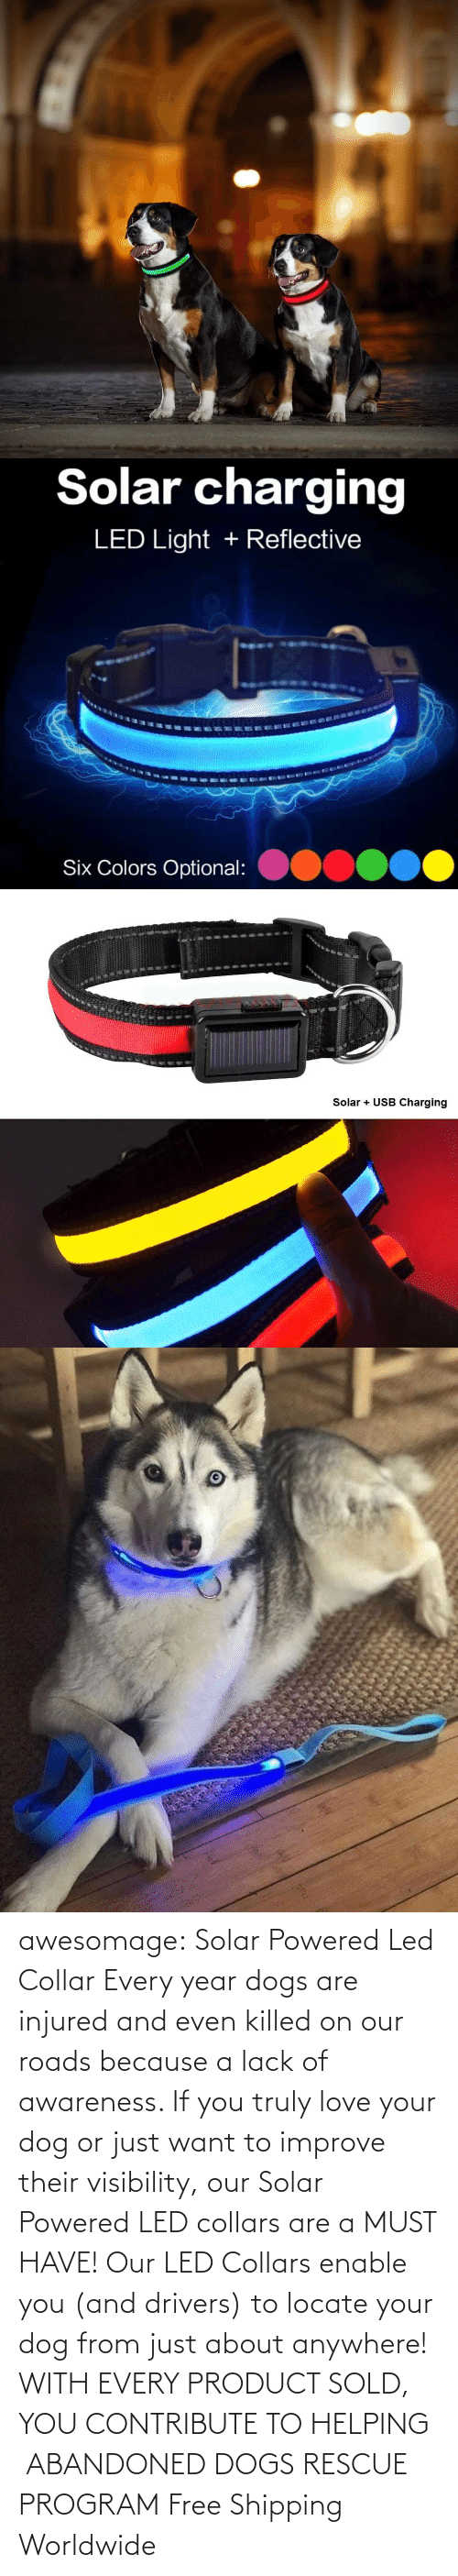 Sold: awesomage: Solar Powered Led Collar   Every year dogs are injured and even killed on our roads because a lack of awareness. If you truly love your dog or just want to improve their visibility, our Solar Powered LED collars are a MUST HAVE!   Our LED Collars enable you (and drivers) to locate your dog from just about anywhere!     WITH EVERY PRODUCT SOLD, YOU CONTRIBUTE TO HELPING  ABANDONED DOGS RESCUE PROGRAM     Free Shipping Worldwide